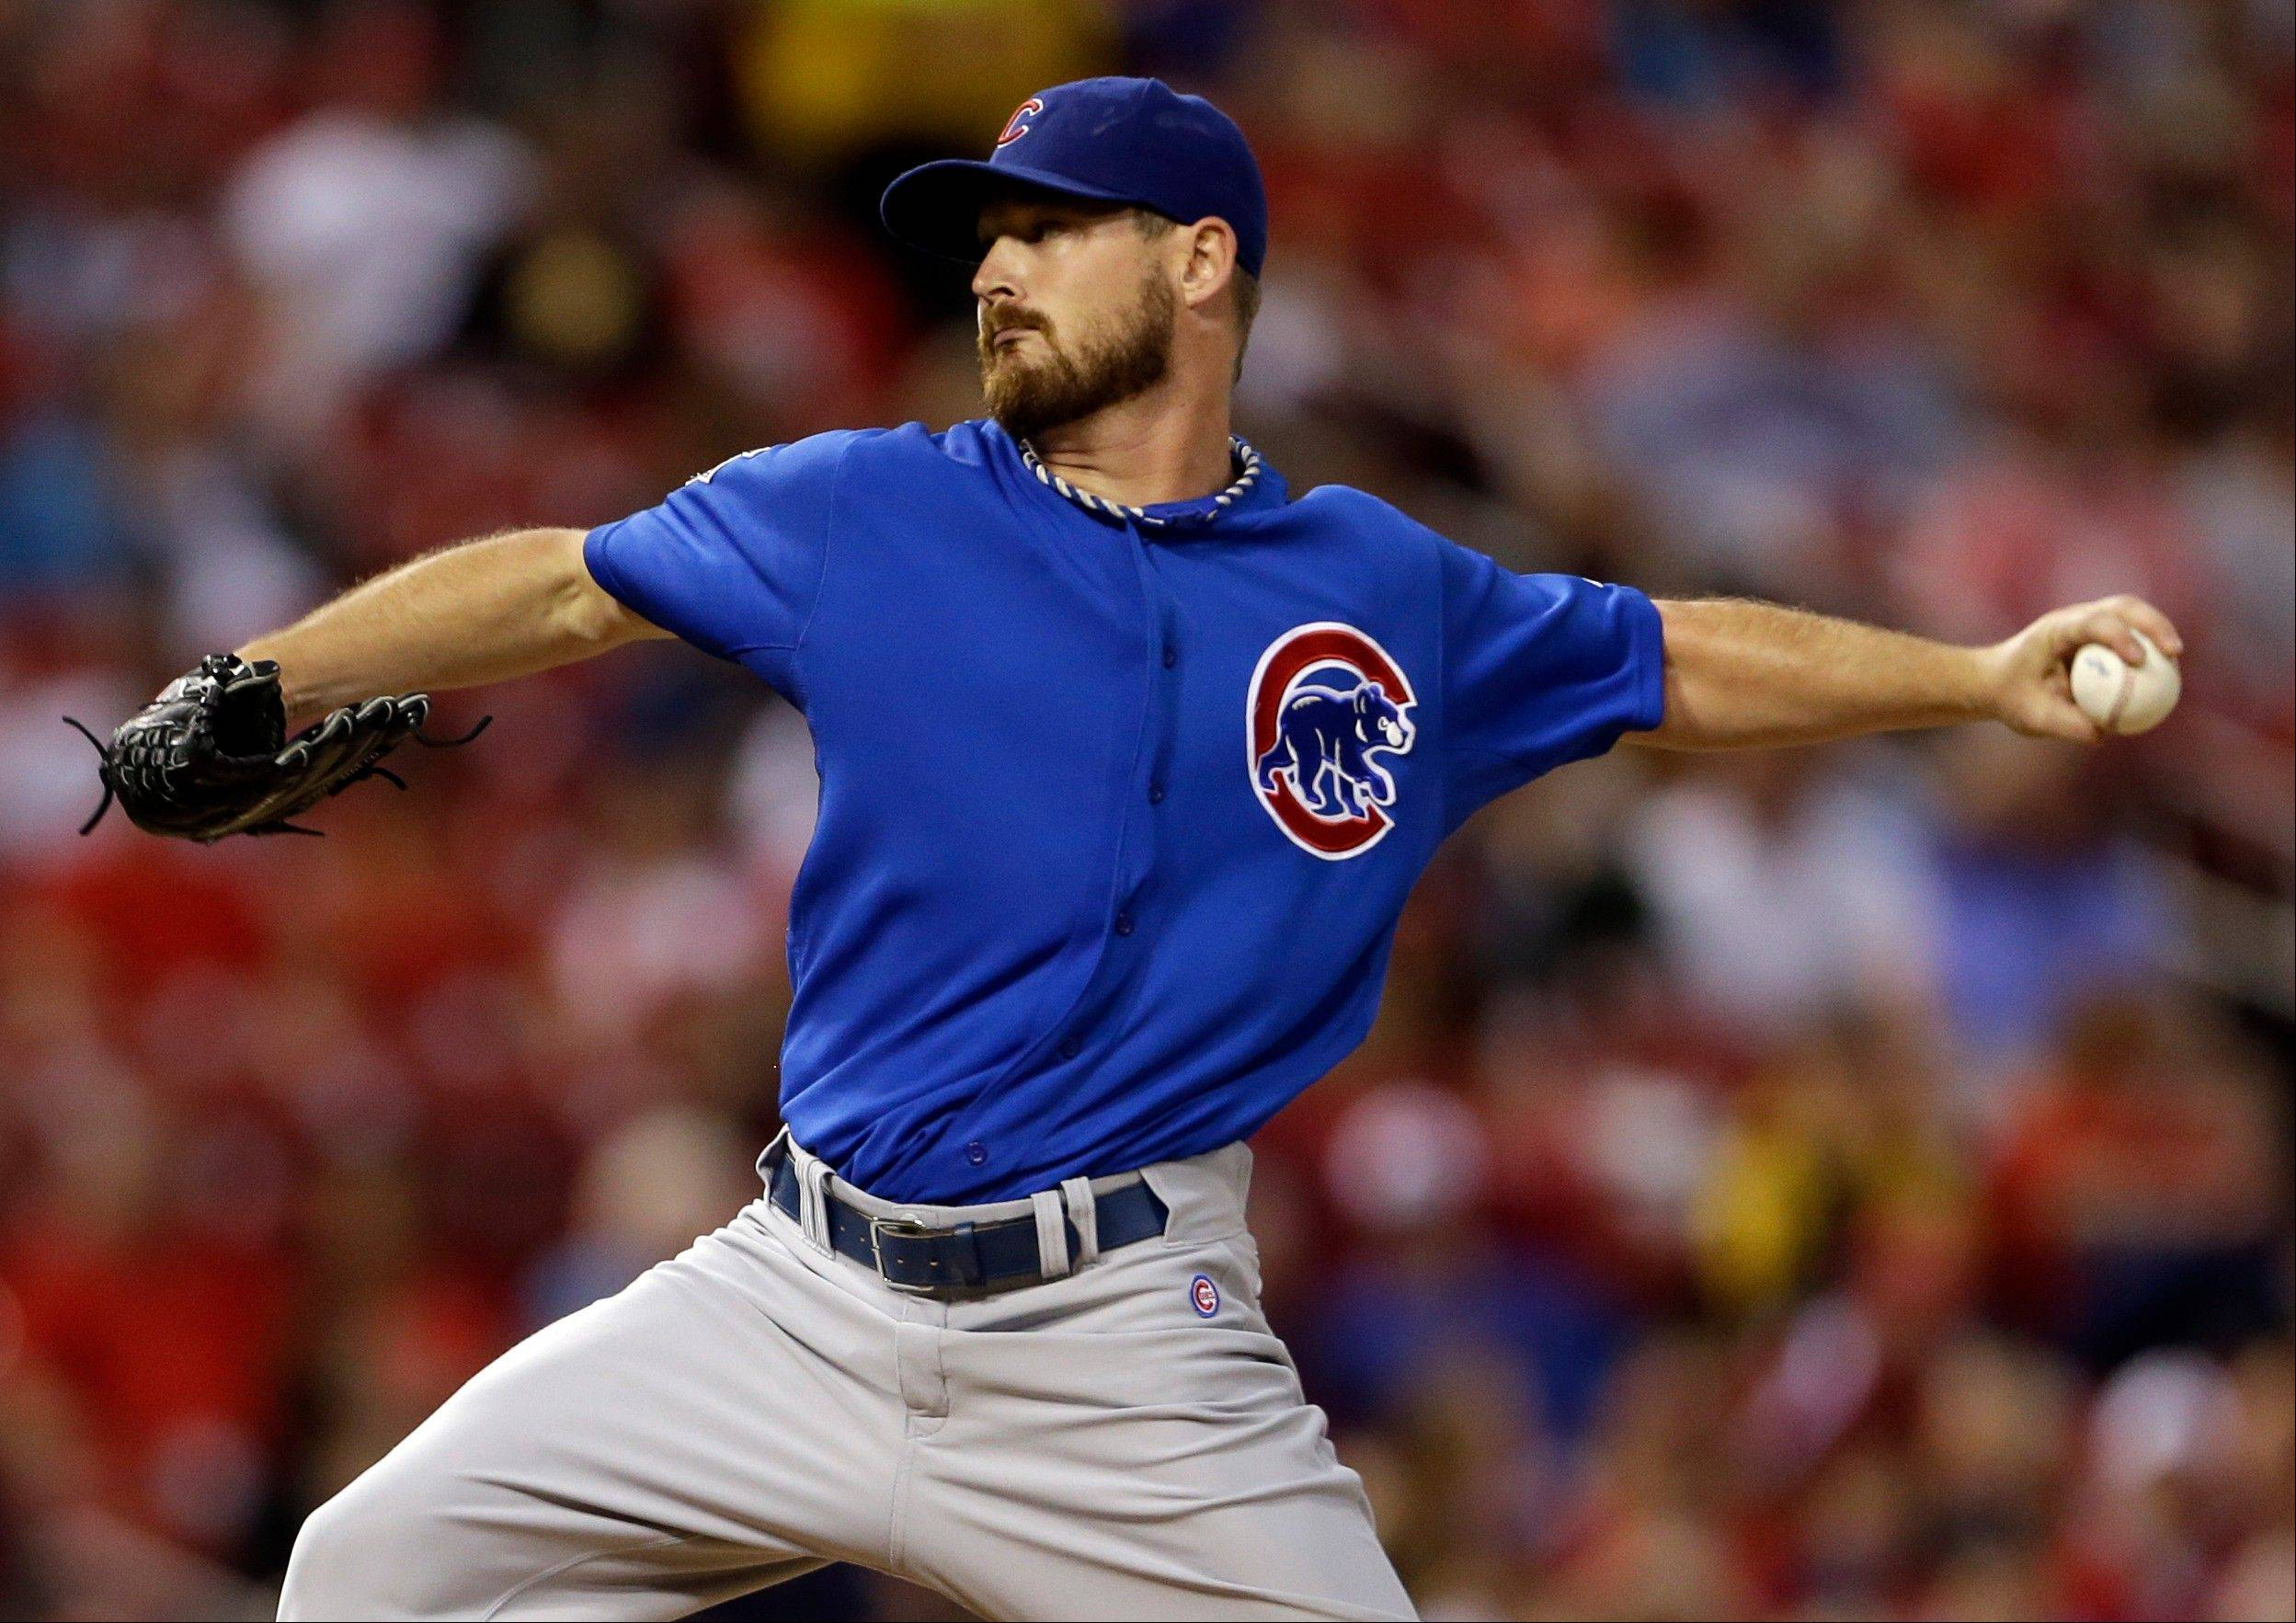 Cubs starting pitcher Travis Wood has a 2.70 ERA in 20 innings of work in his last three starts -- all losses.